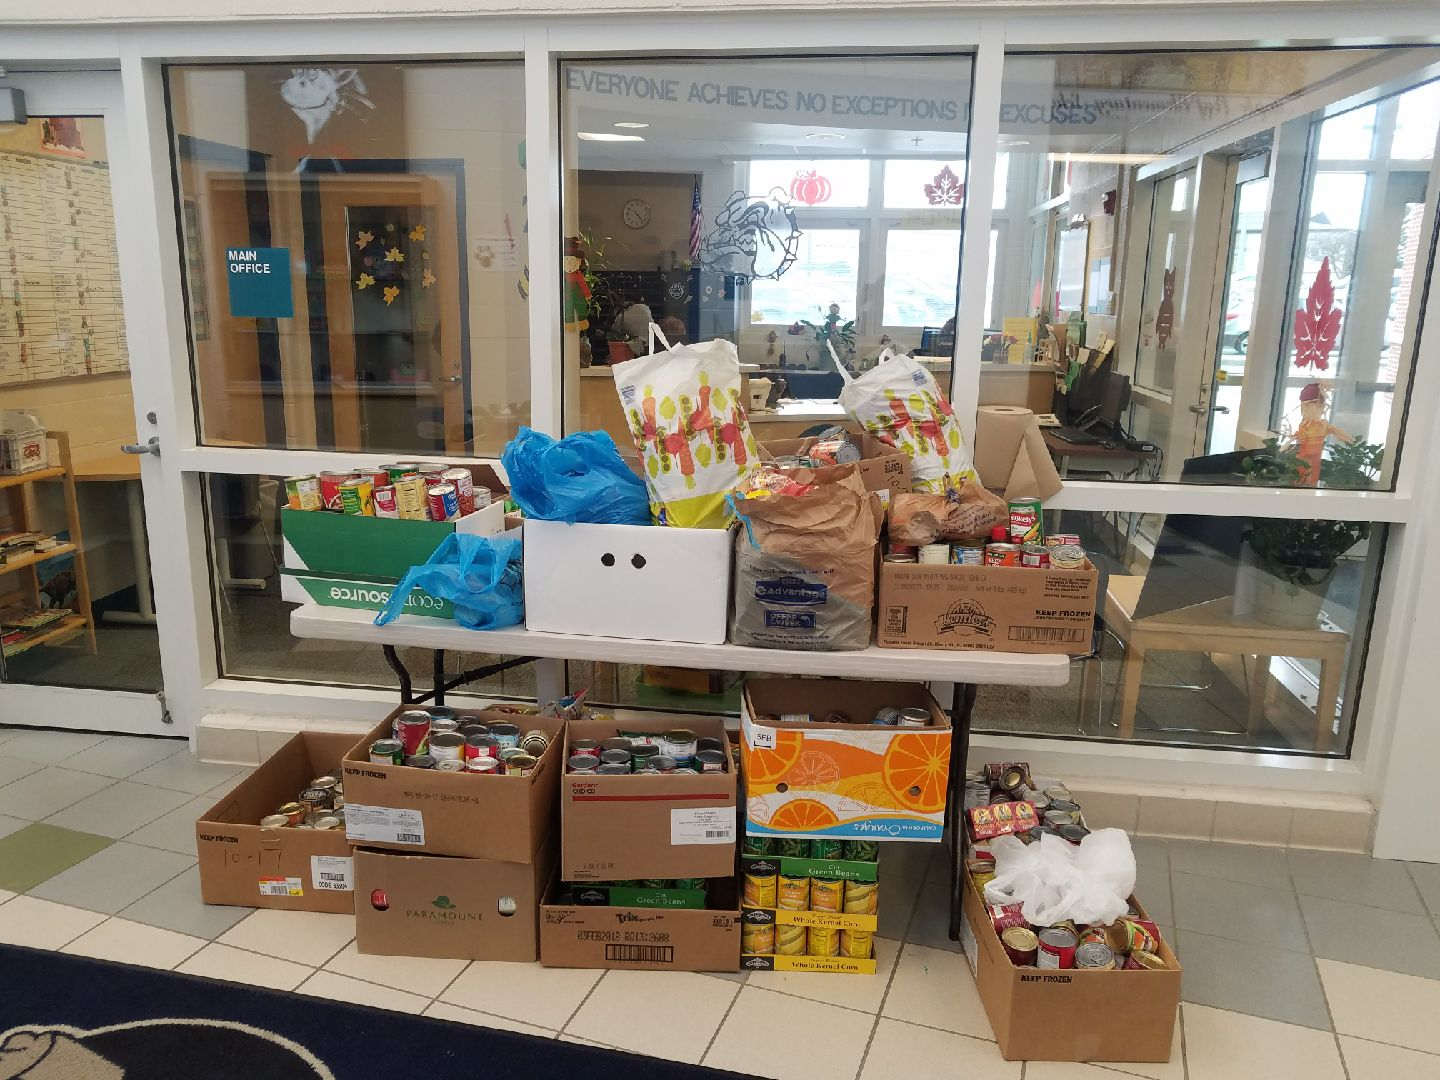 bags and boxes of canned goods